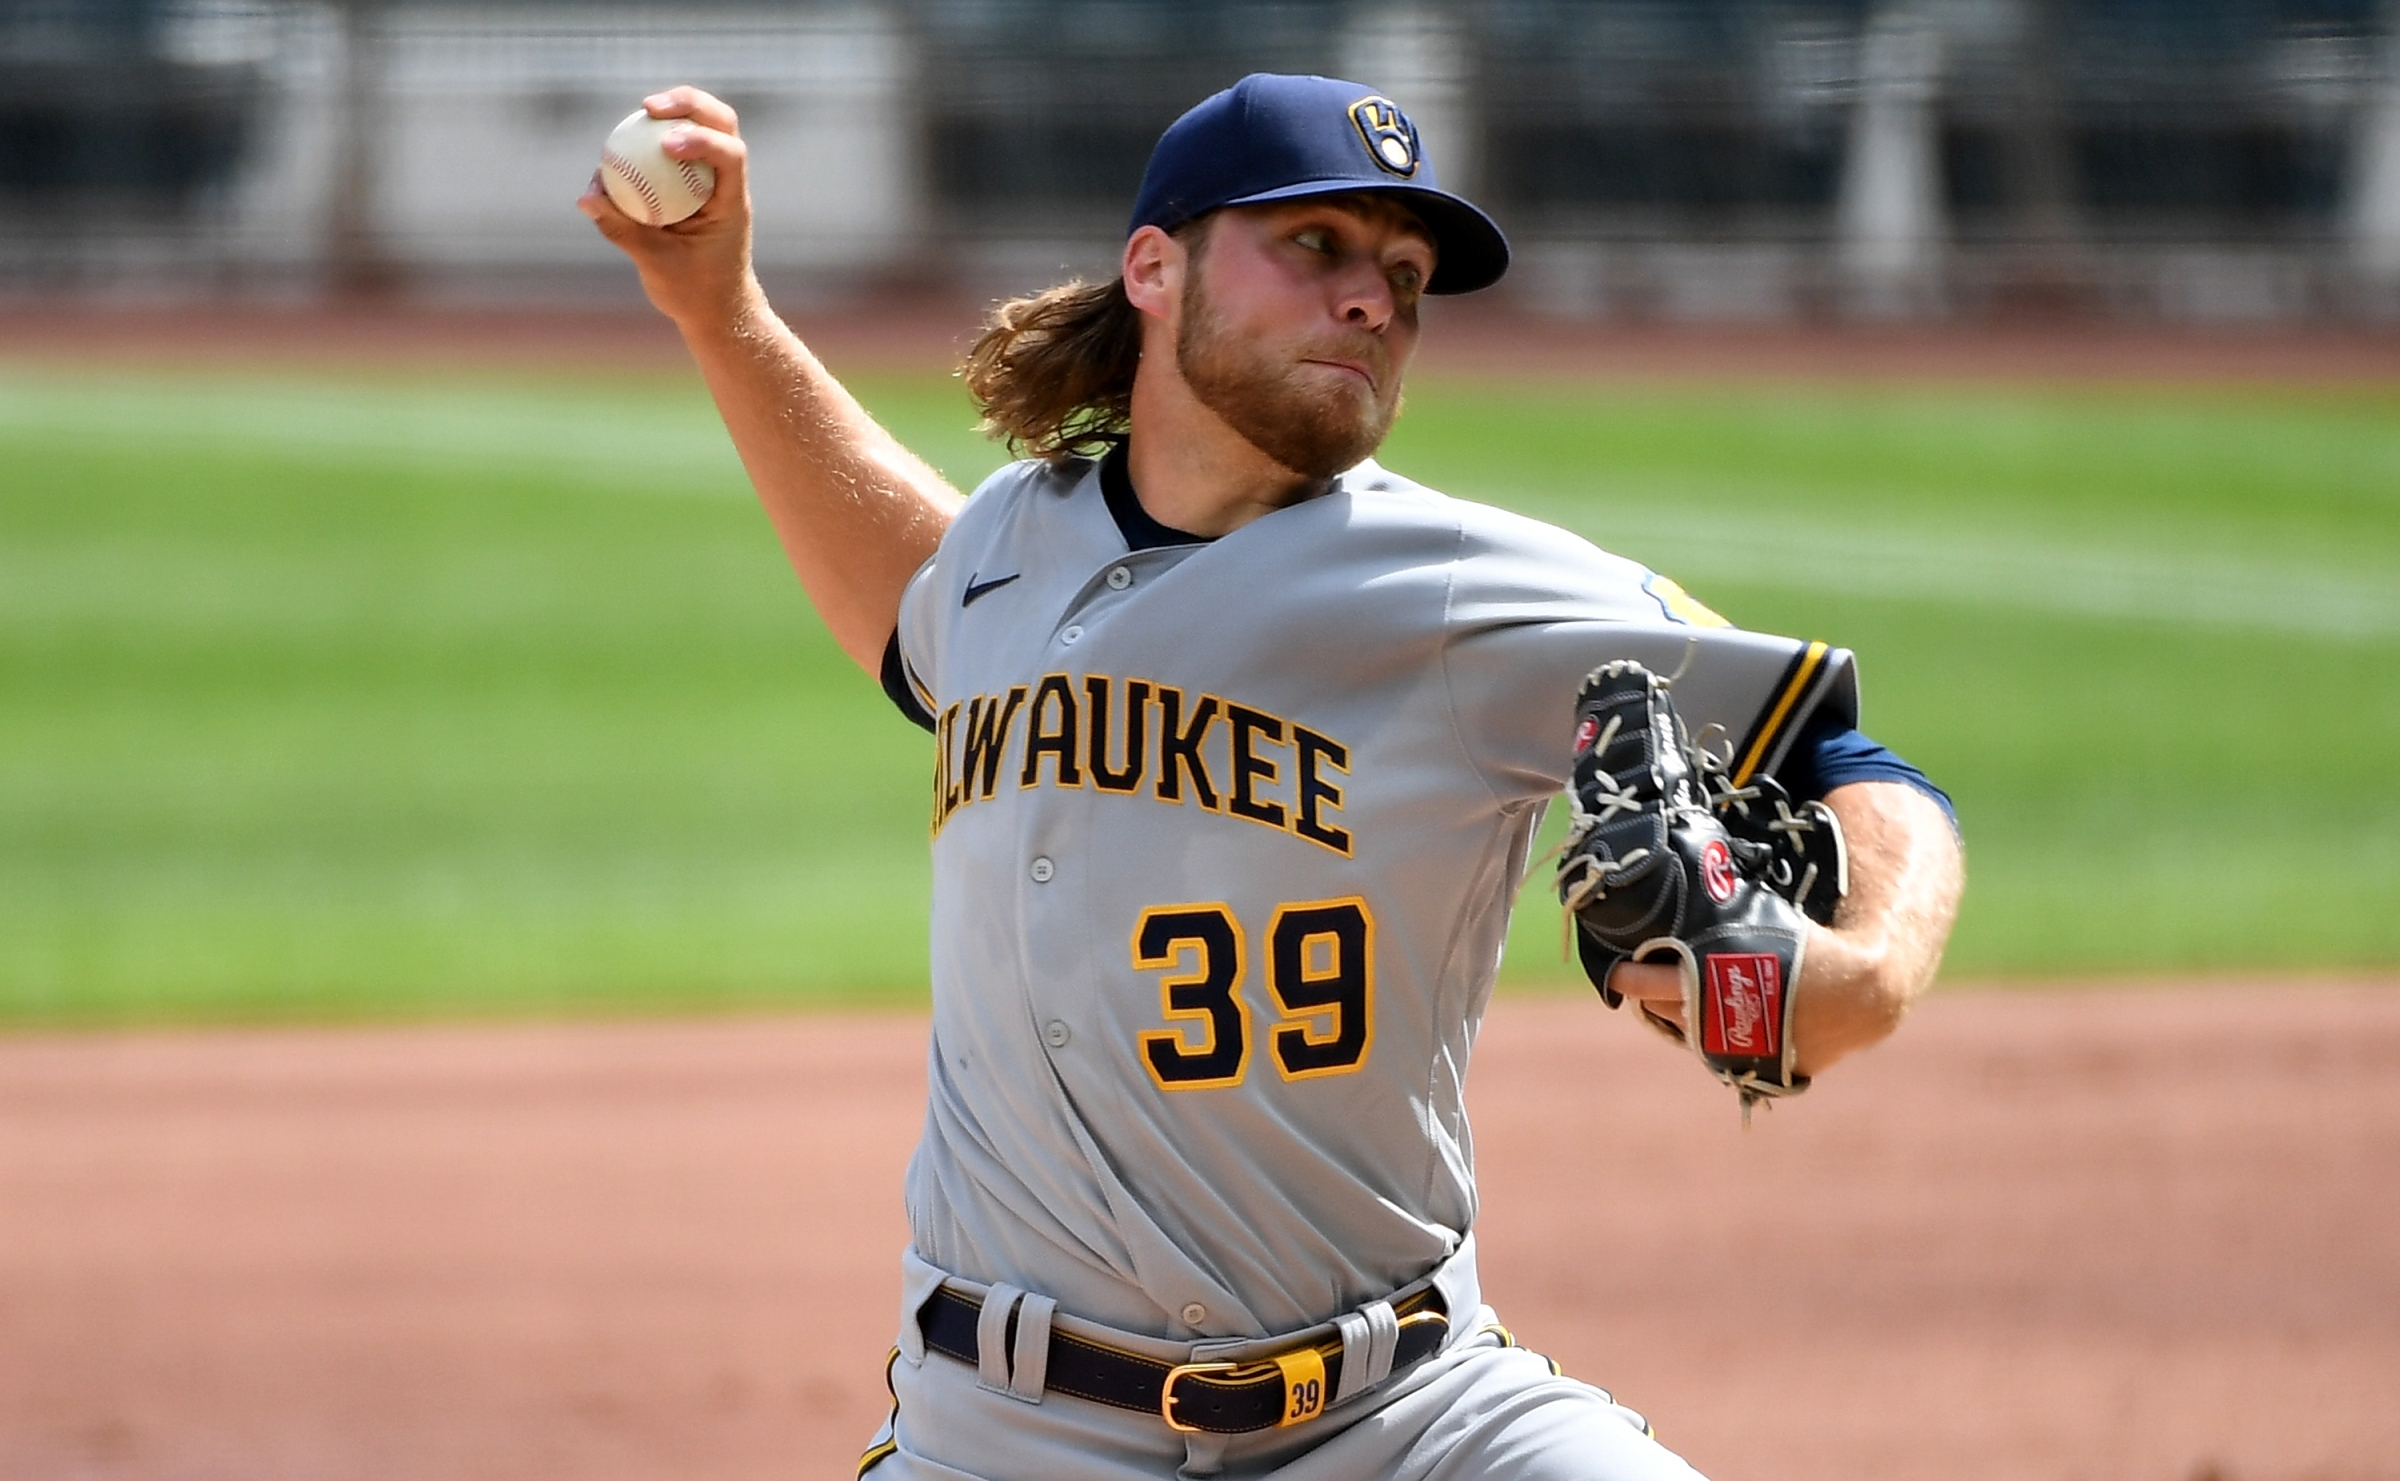 Milwaukee pitcher Corbin Burnes throws a pitch in a game against the Minnesota Twins.